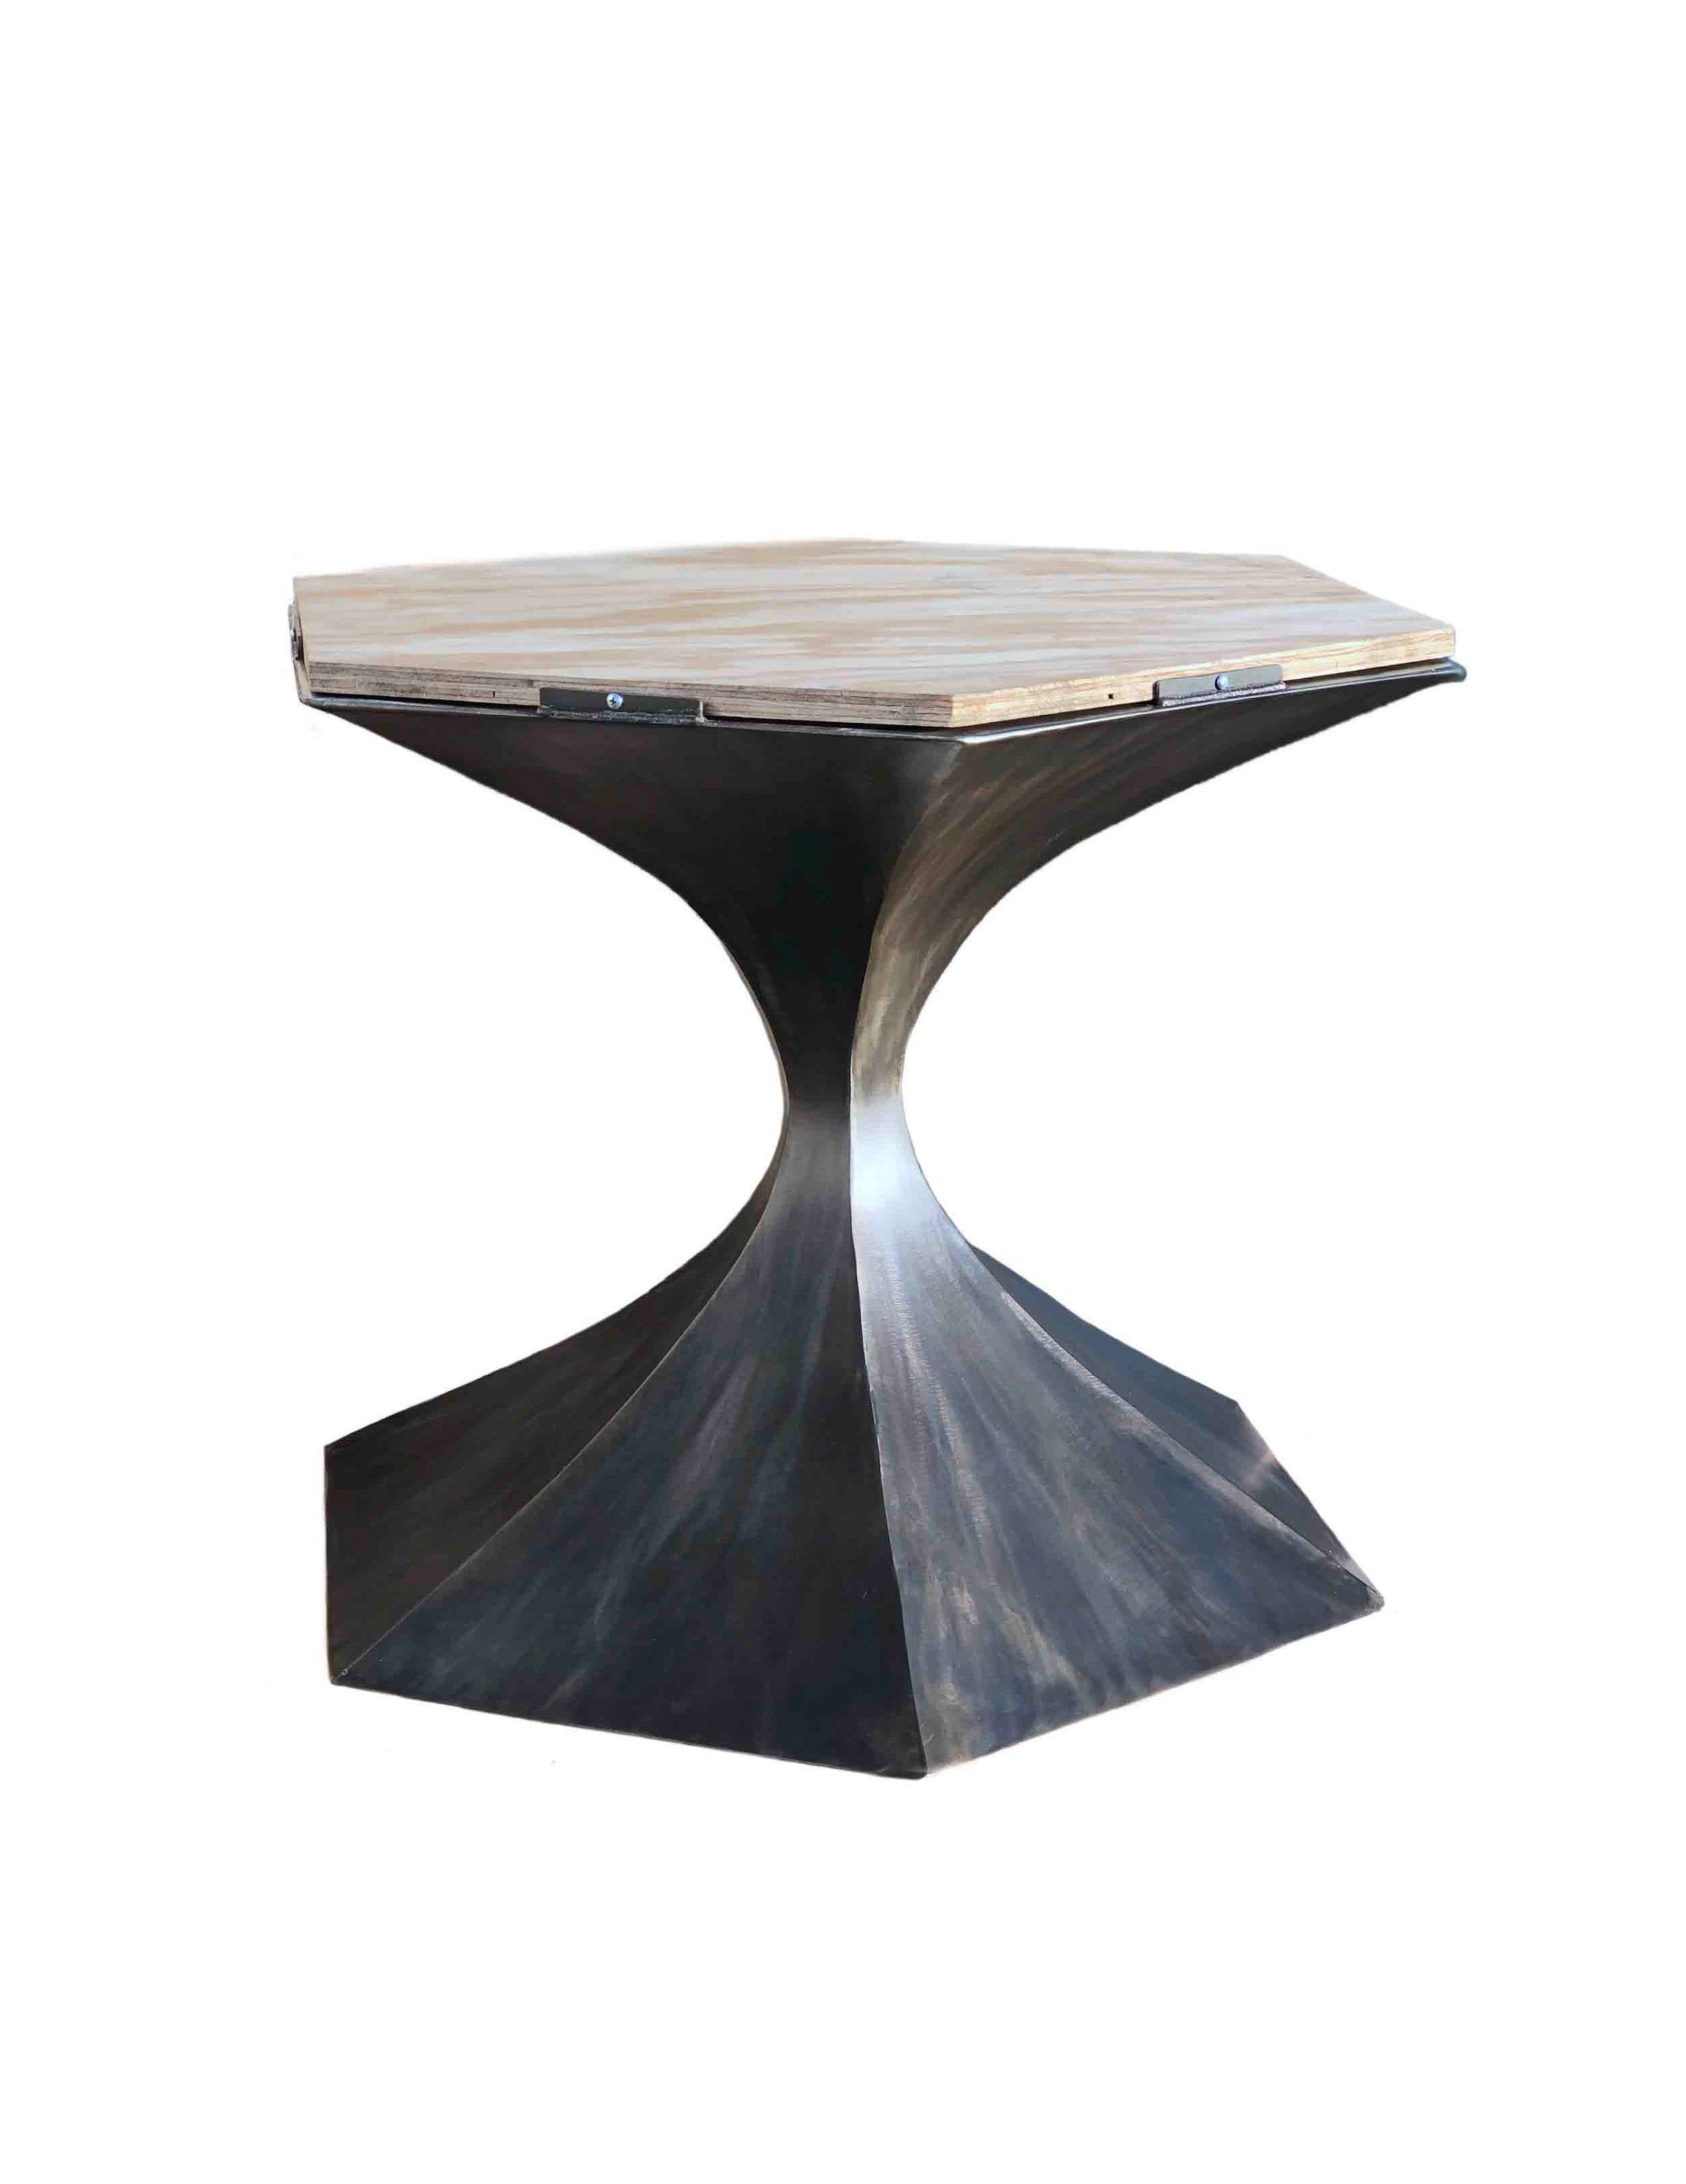 Tulip Table Metal Table Base Dining Room Table Etsy Metal Table Base Metal Table Pedestal Table Base